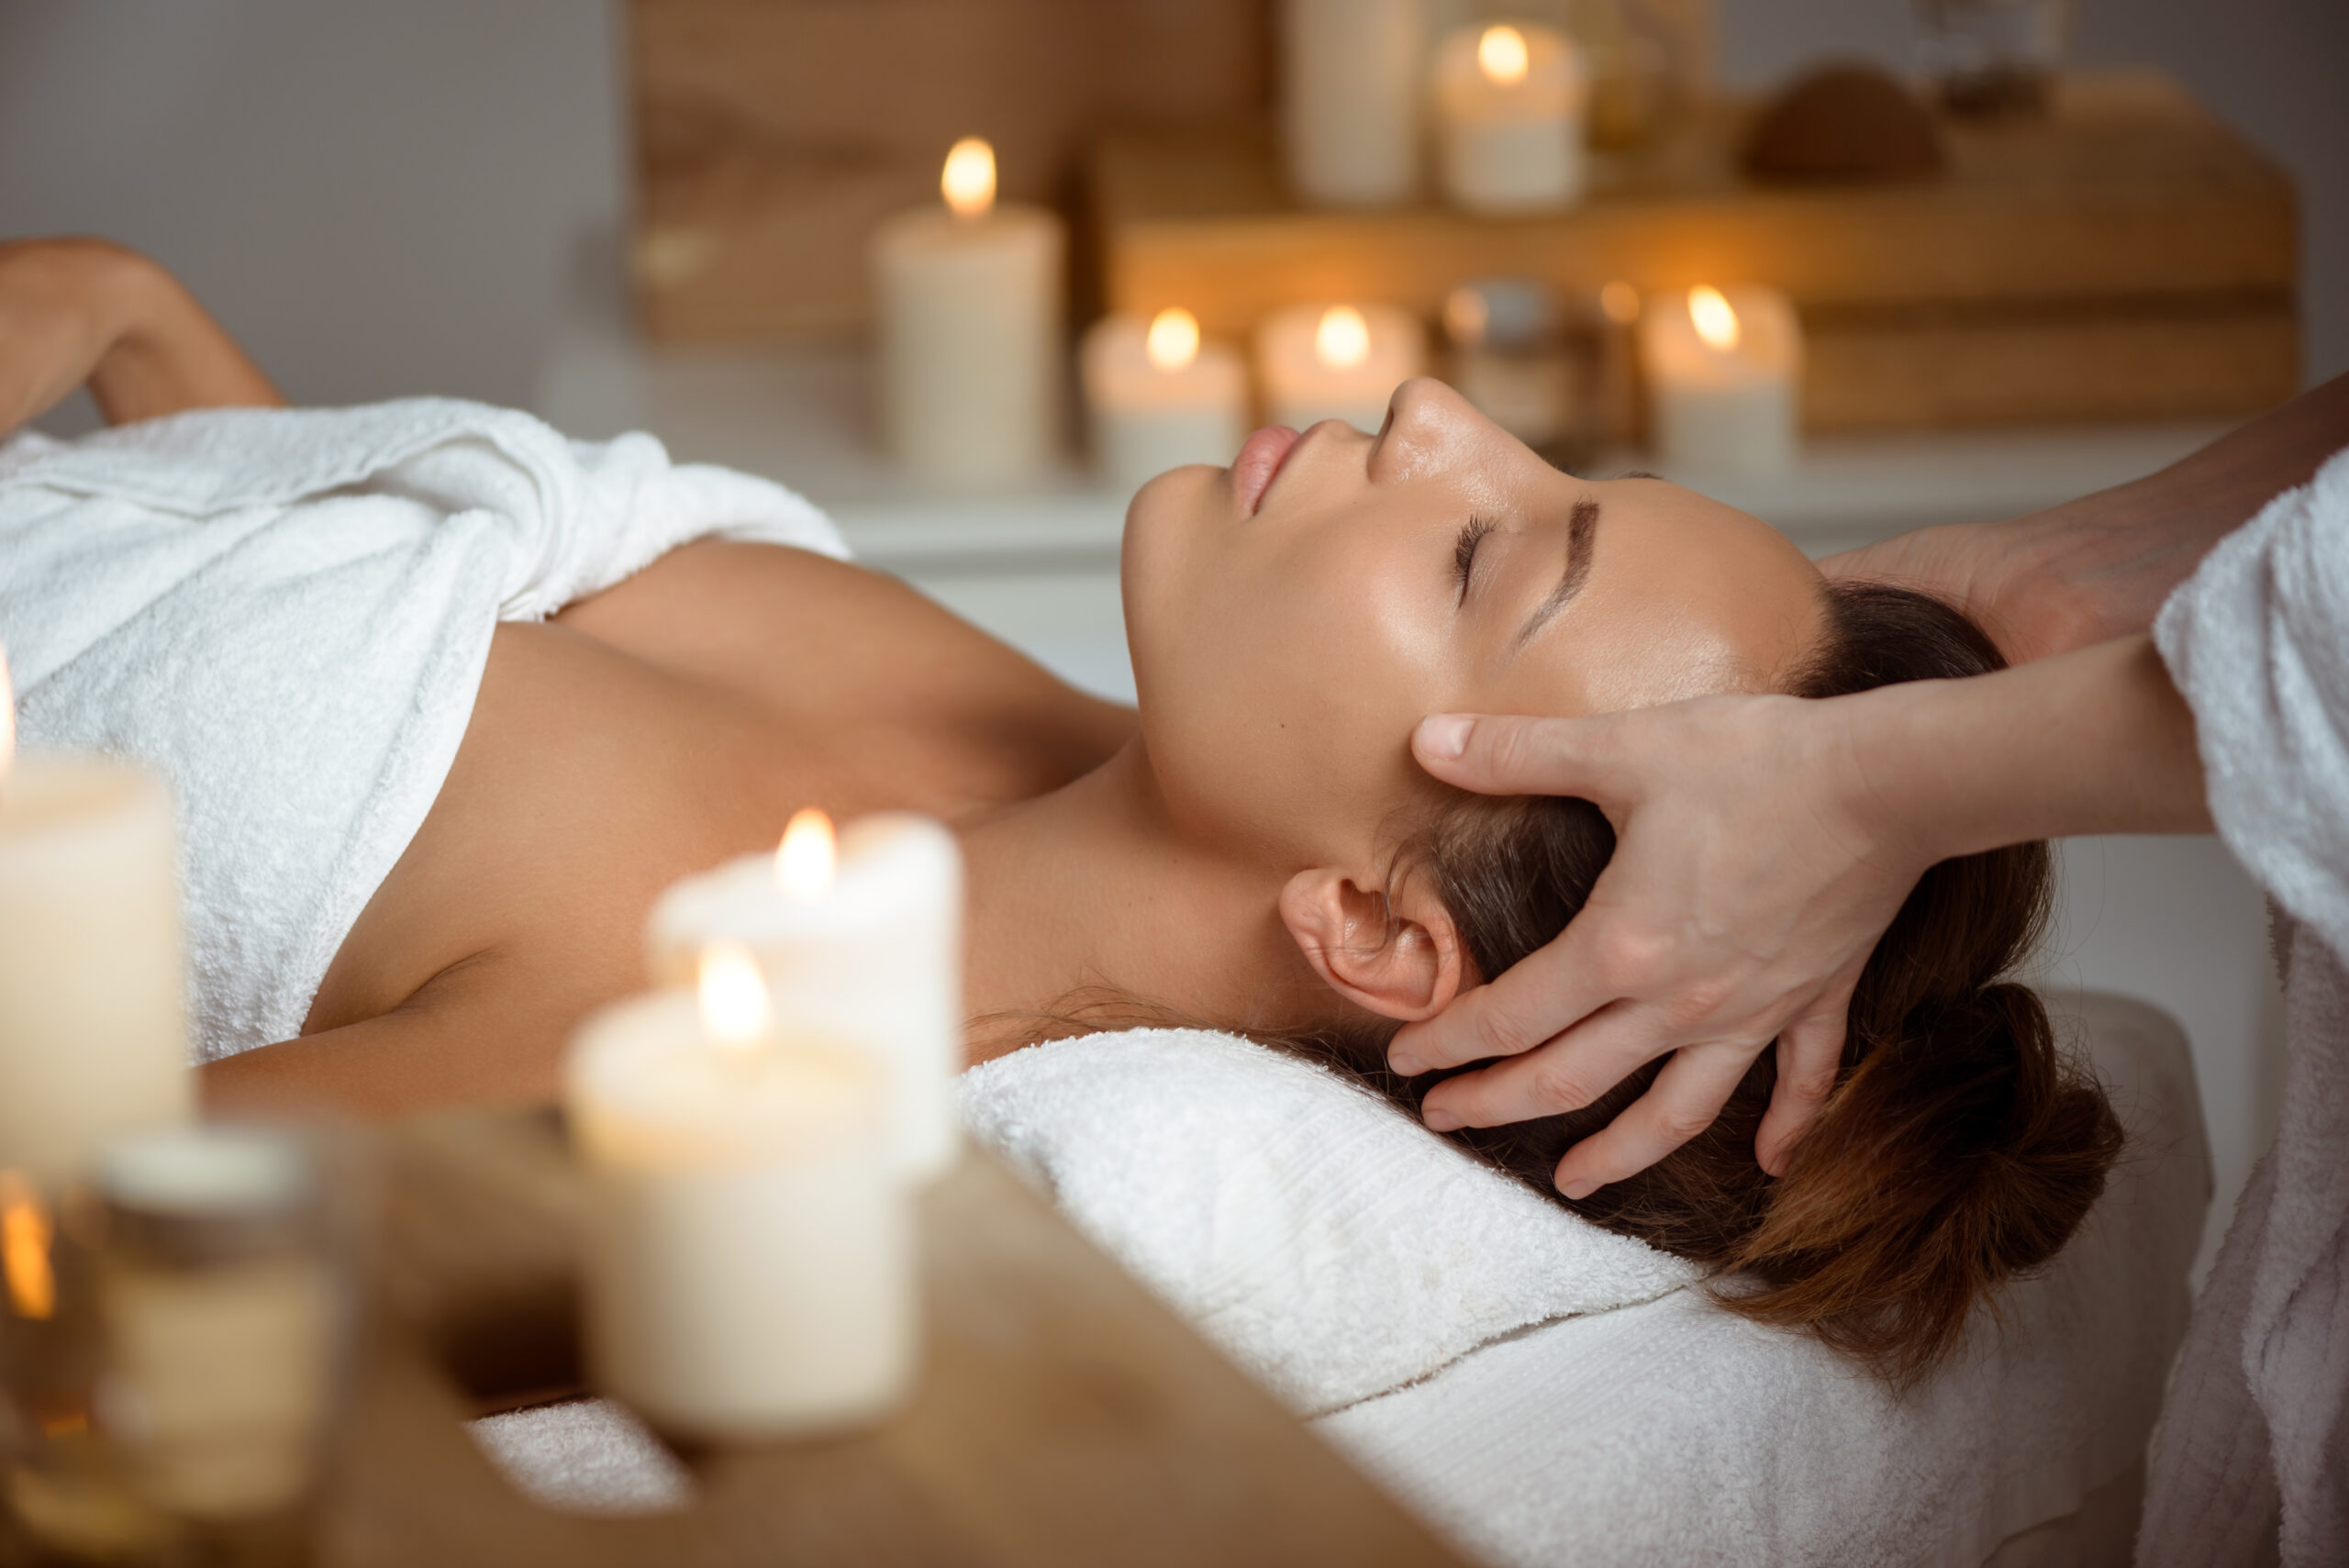 Reasons to book a day of spa treatments at Diva